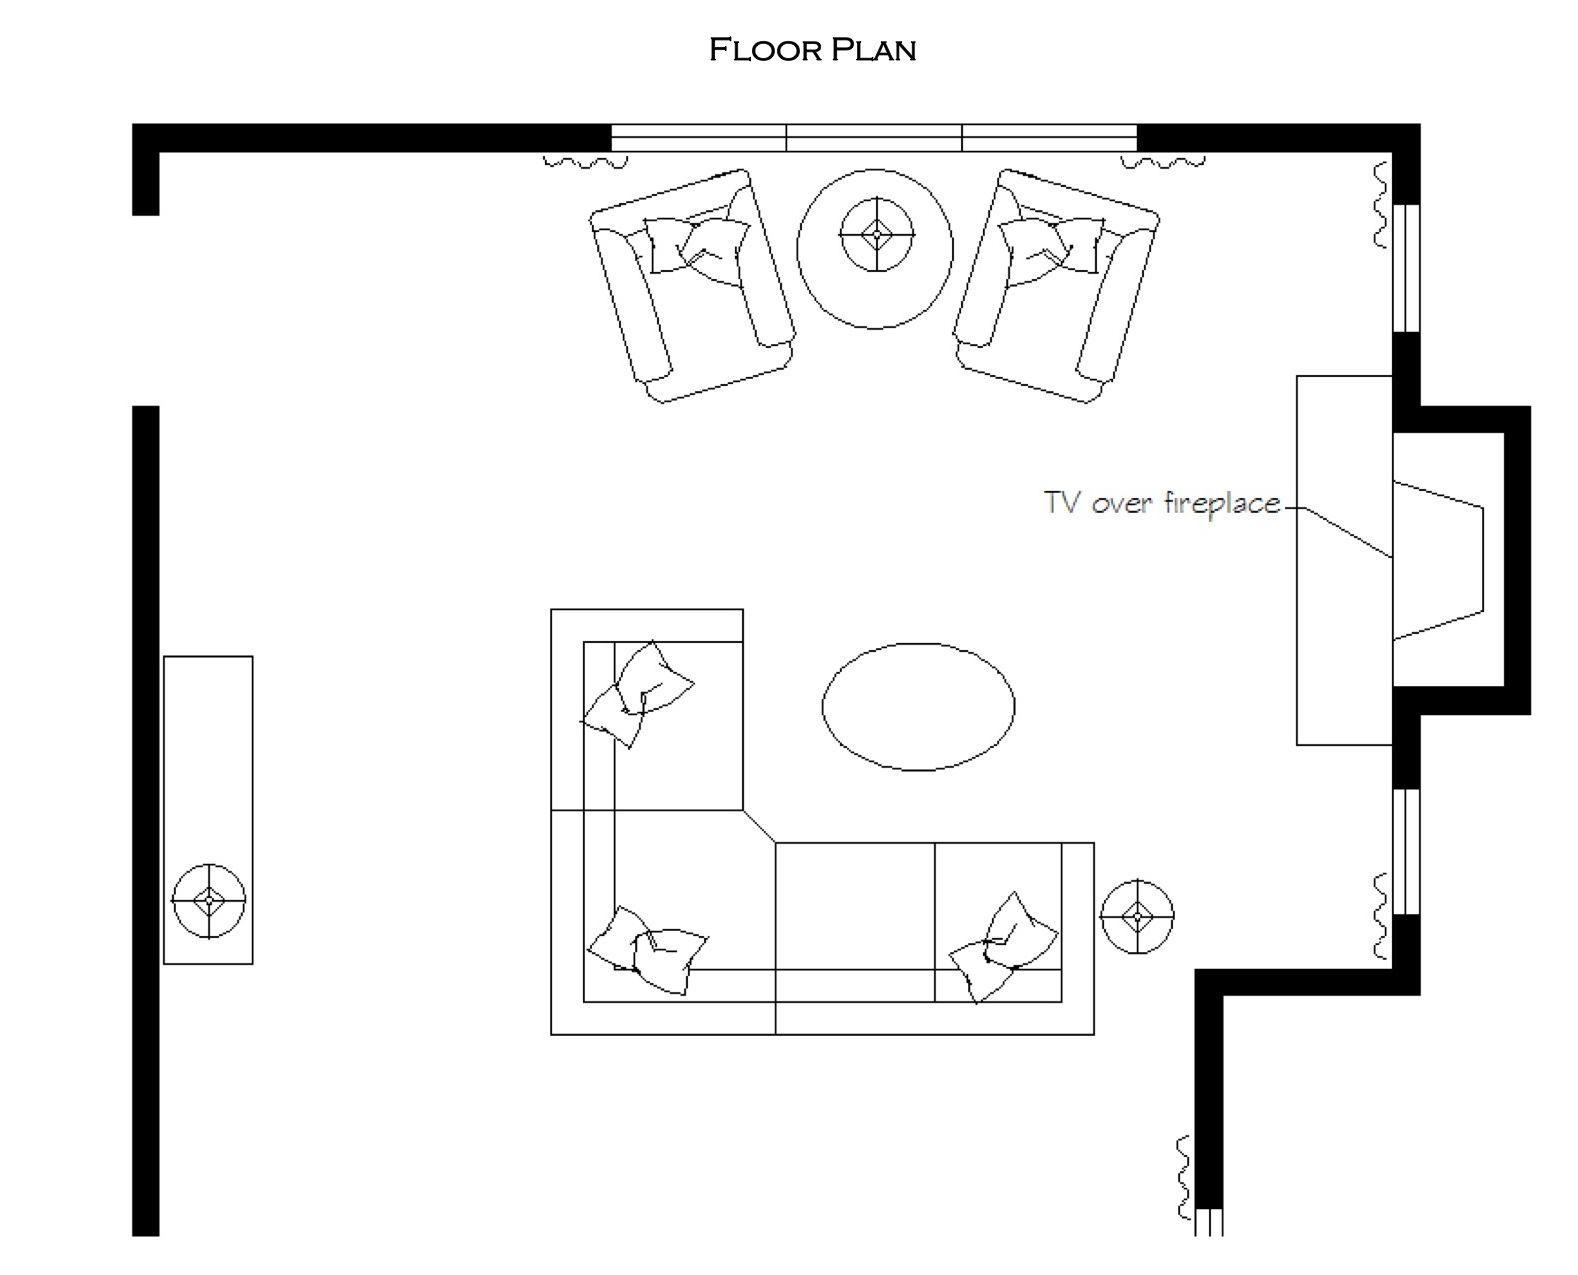 Living Room Floor Plan living room floor plan; sectional, tv over fireplace, reading area